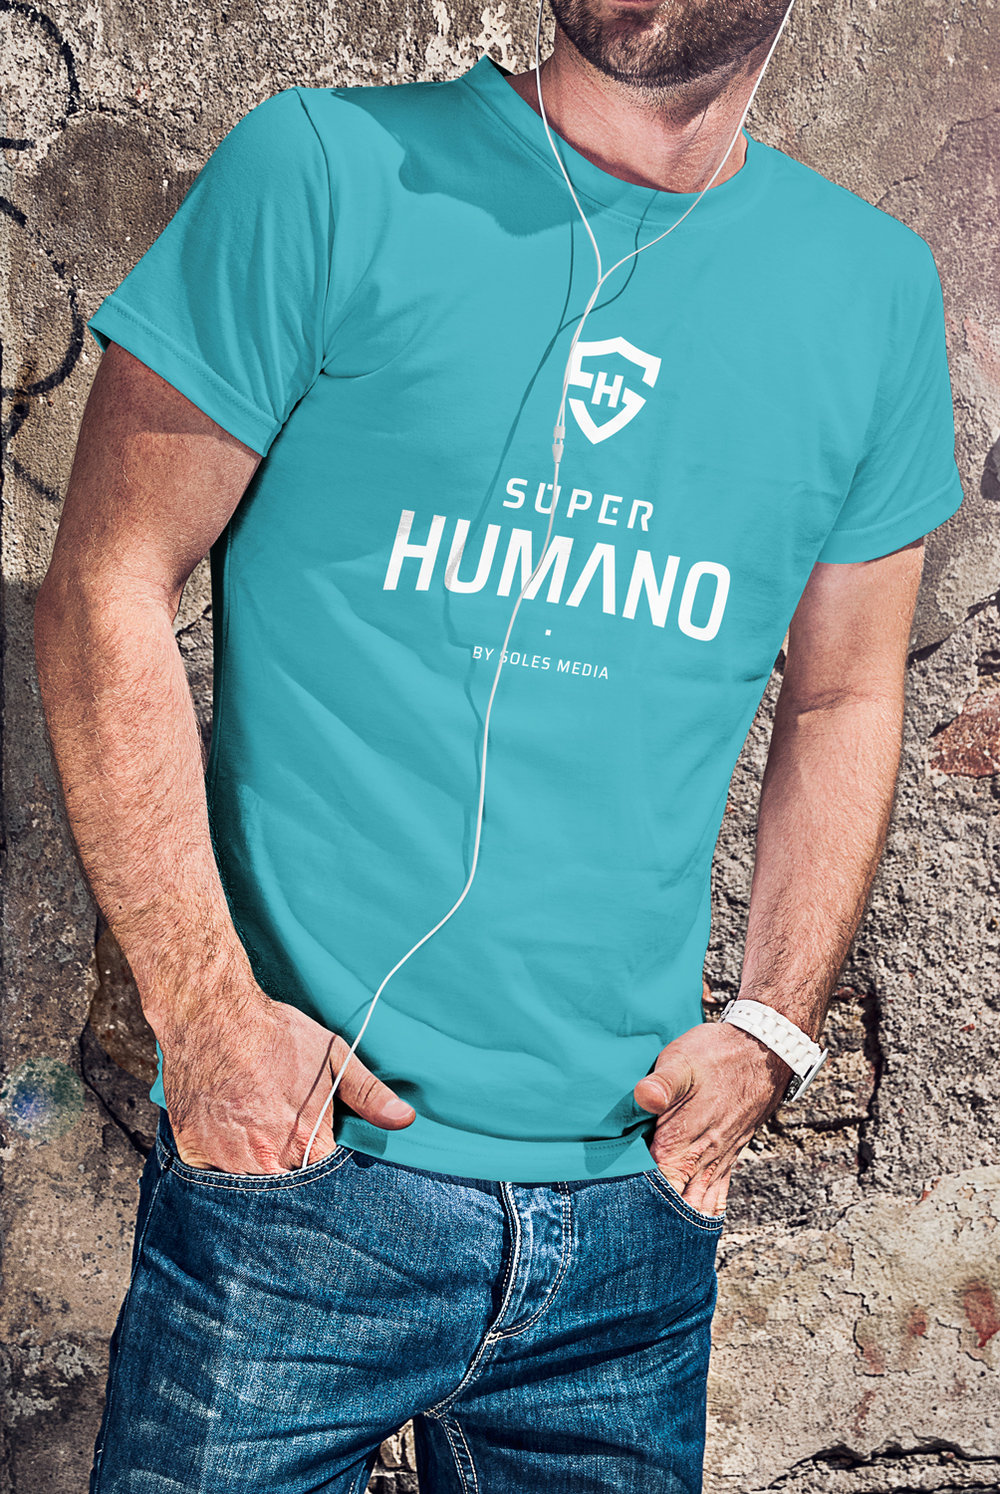 logo-1-shirt-man.jpg